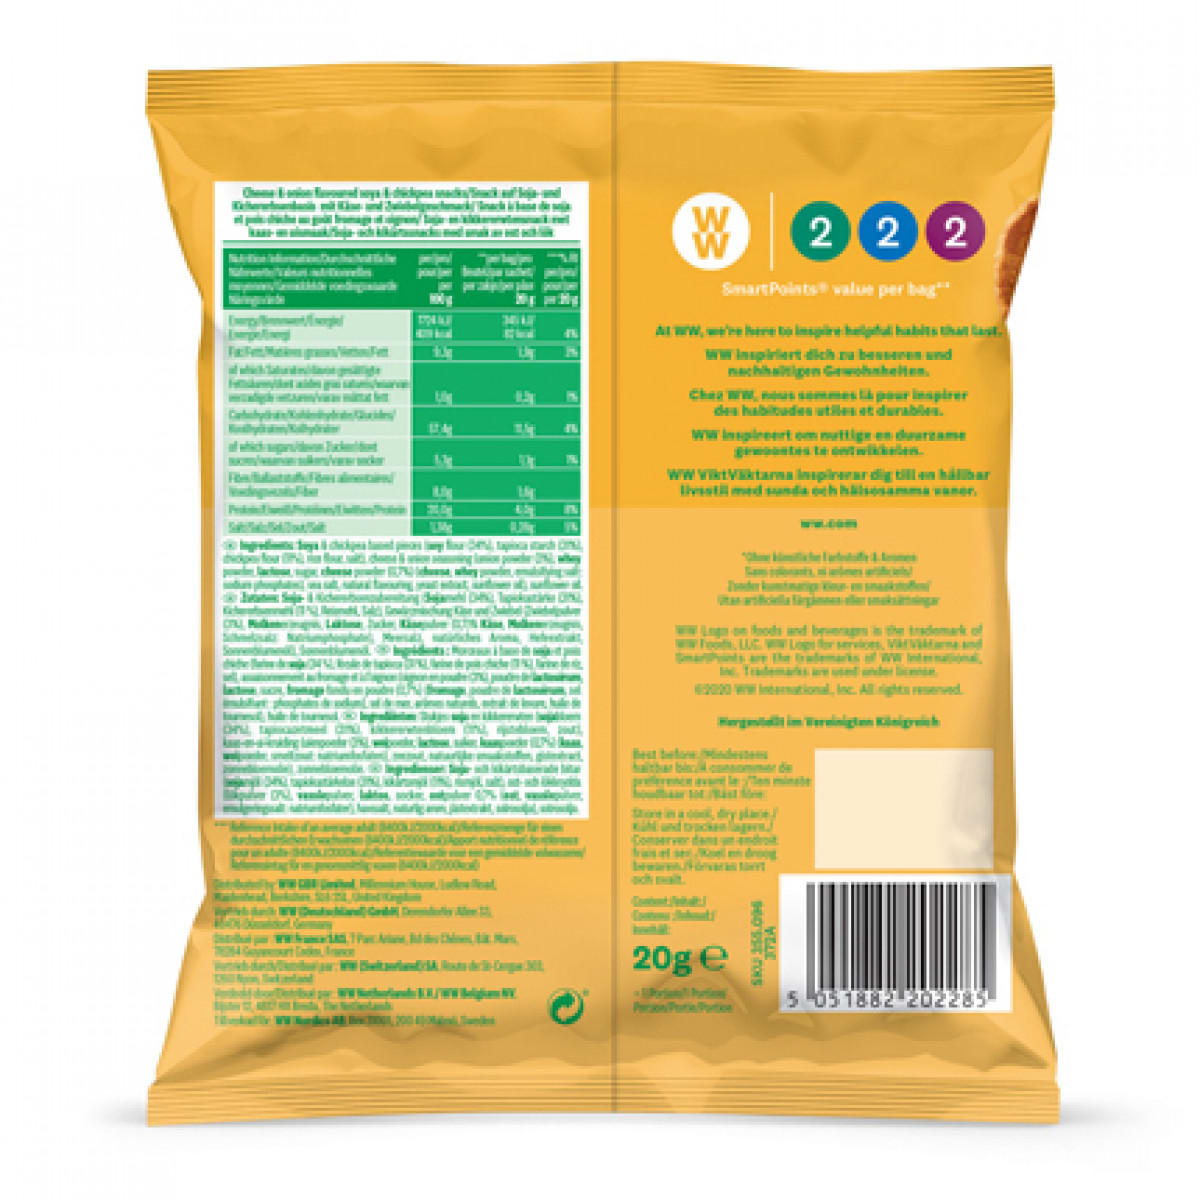 Cheese & Onion Snack Back